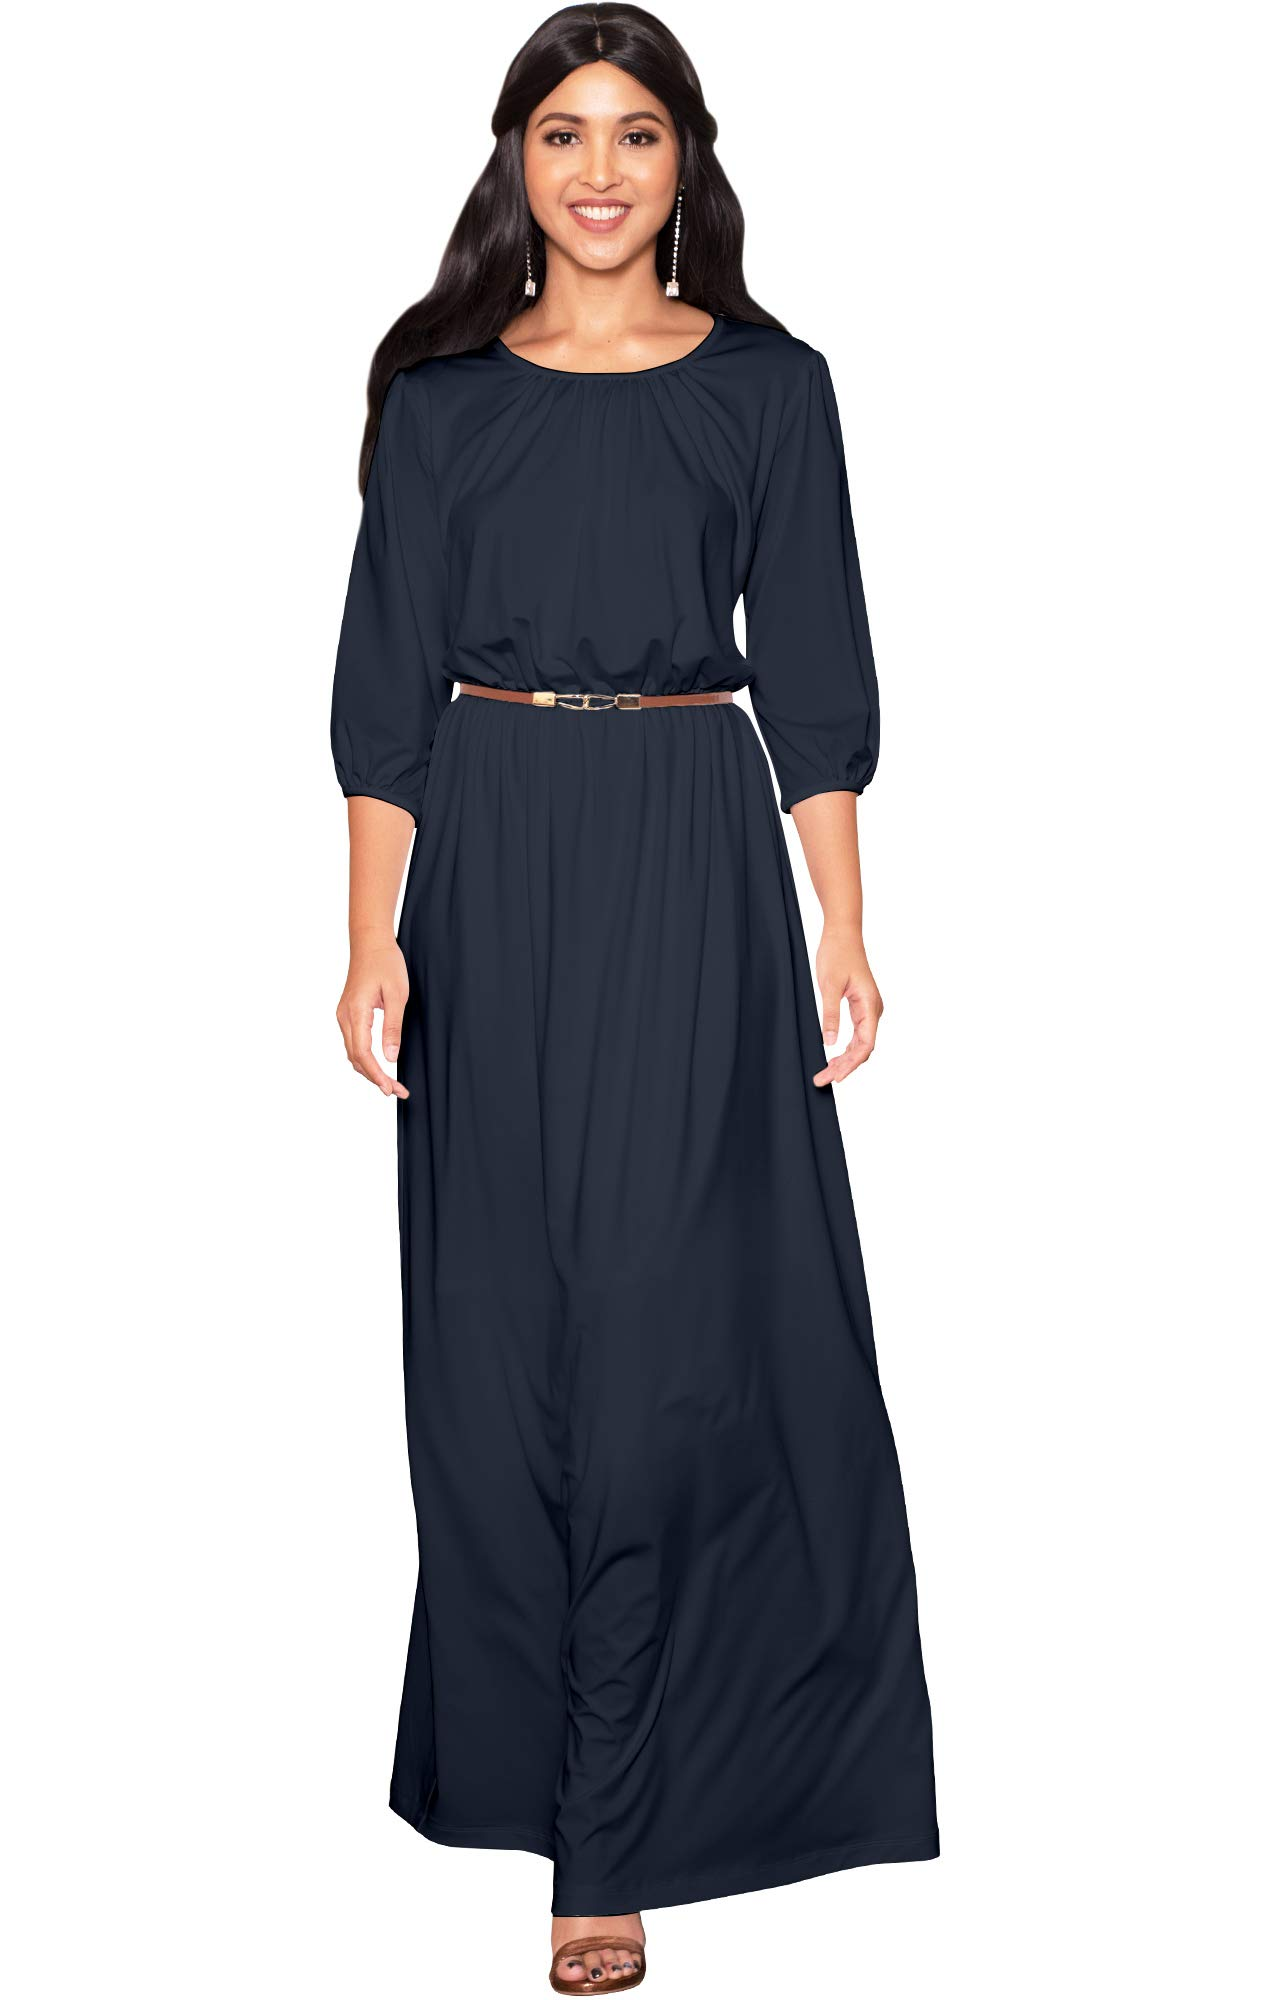 36e3dbee448 KOH KOH Plus Size Women Long 3 4 Sleeve Sleeves Vintage Autumn Fall Winter  Flowy Formal Evening Work Office Modest Peasant Cute Abaya Gown Gowns Maxi  Dress ...